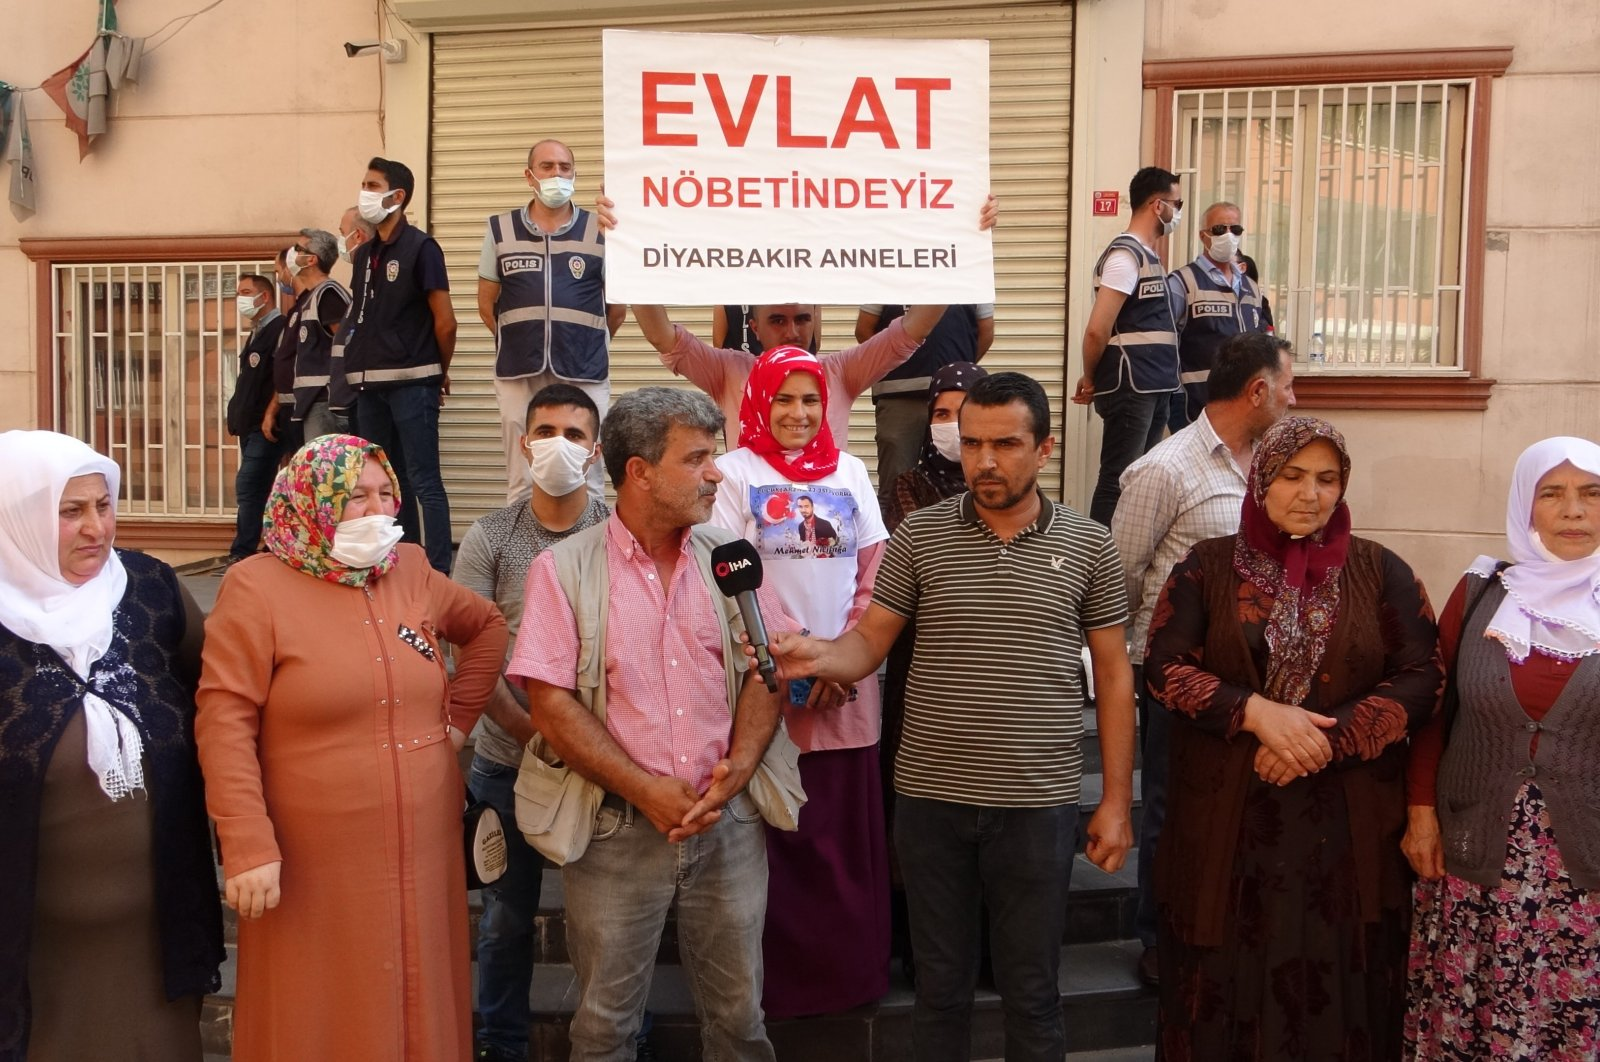 Families make a press statement after CHP lawmaker fails to visit them in front of the HDP headquarters in Diyarbakır, July 2, 2021. (IHA Photo)